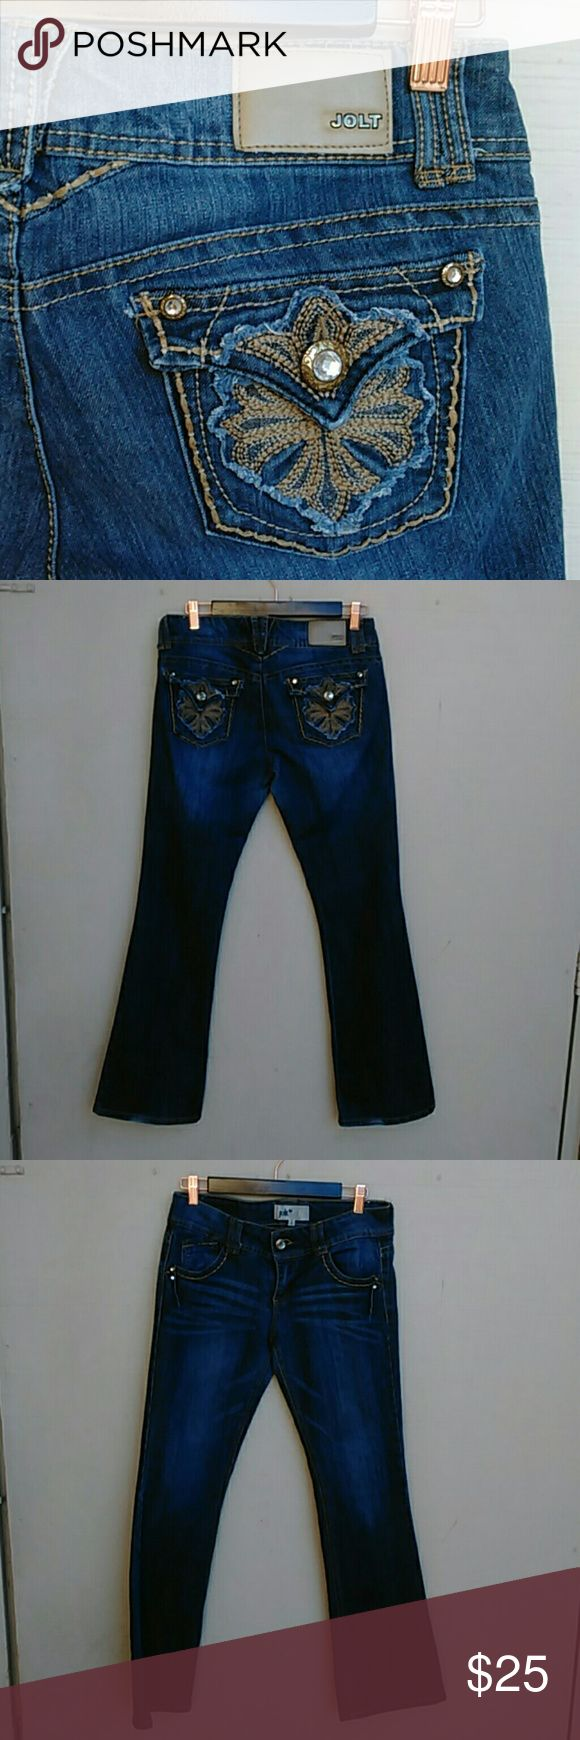 Darling JOLT jeans Sweet jeans by jolt. Soft denim, with embellished pockets, button closures, no drag, good used condition. Ask questions bundle for discounts Jolt Jeans Boot Cut